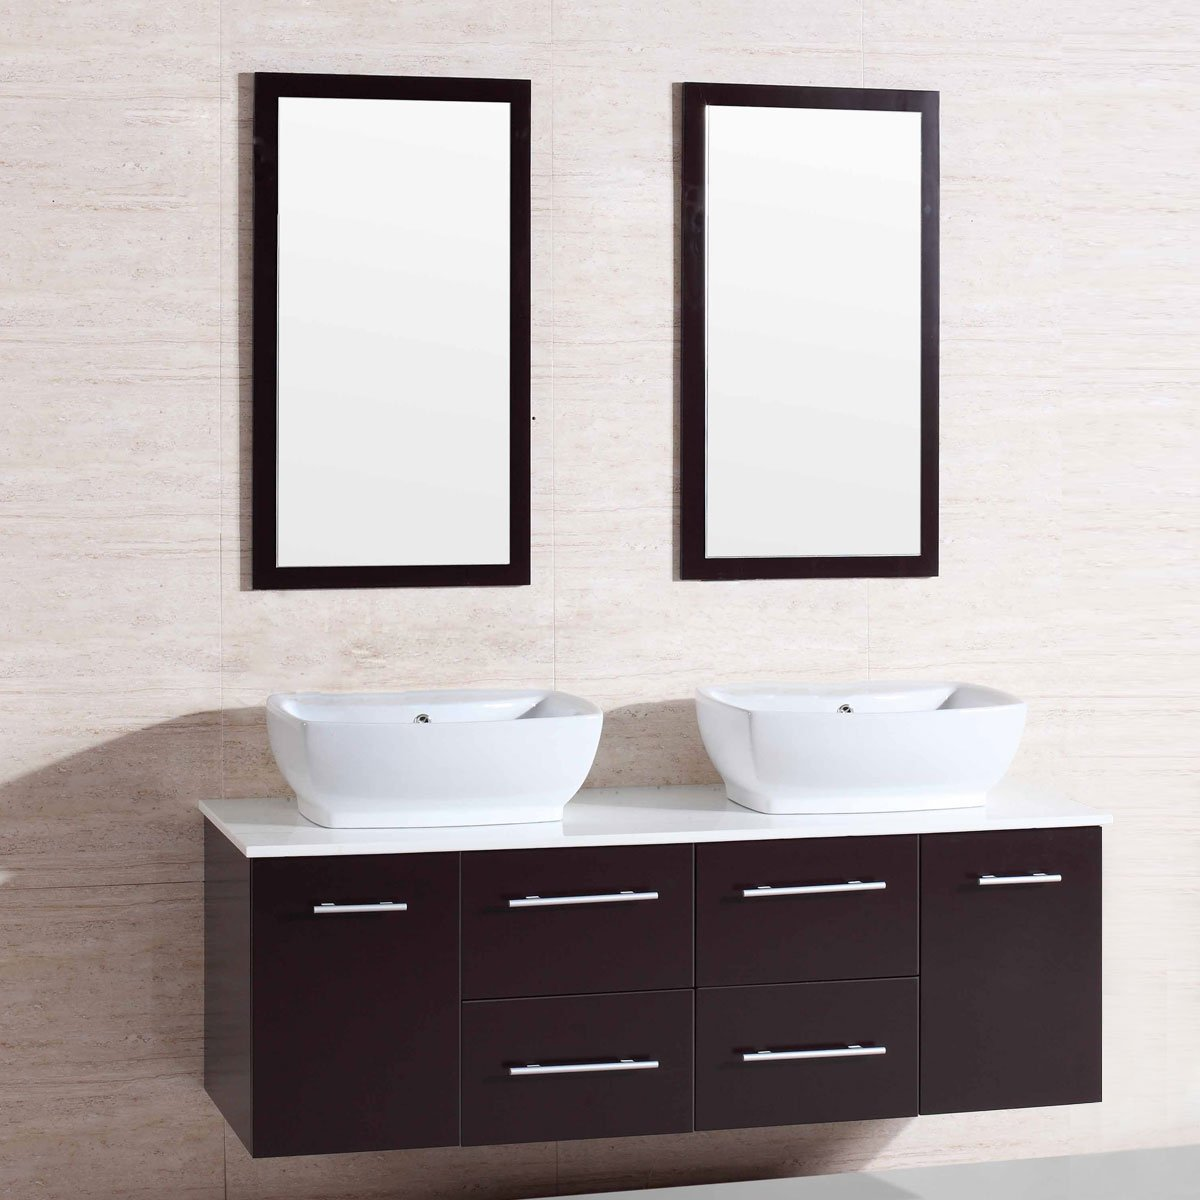 Decoraport 60 In. Wall Mount Bathroom Vanity Set with Double Sinks and Mirrors (A-T9146)